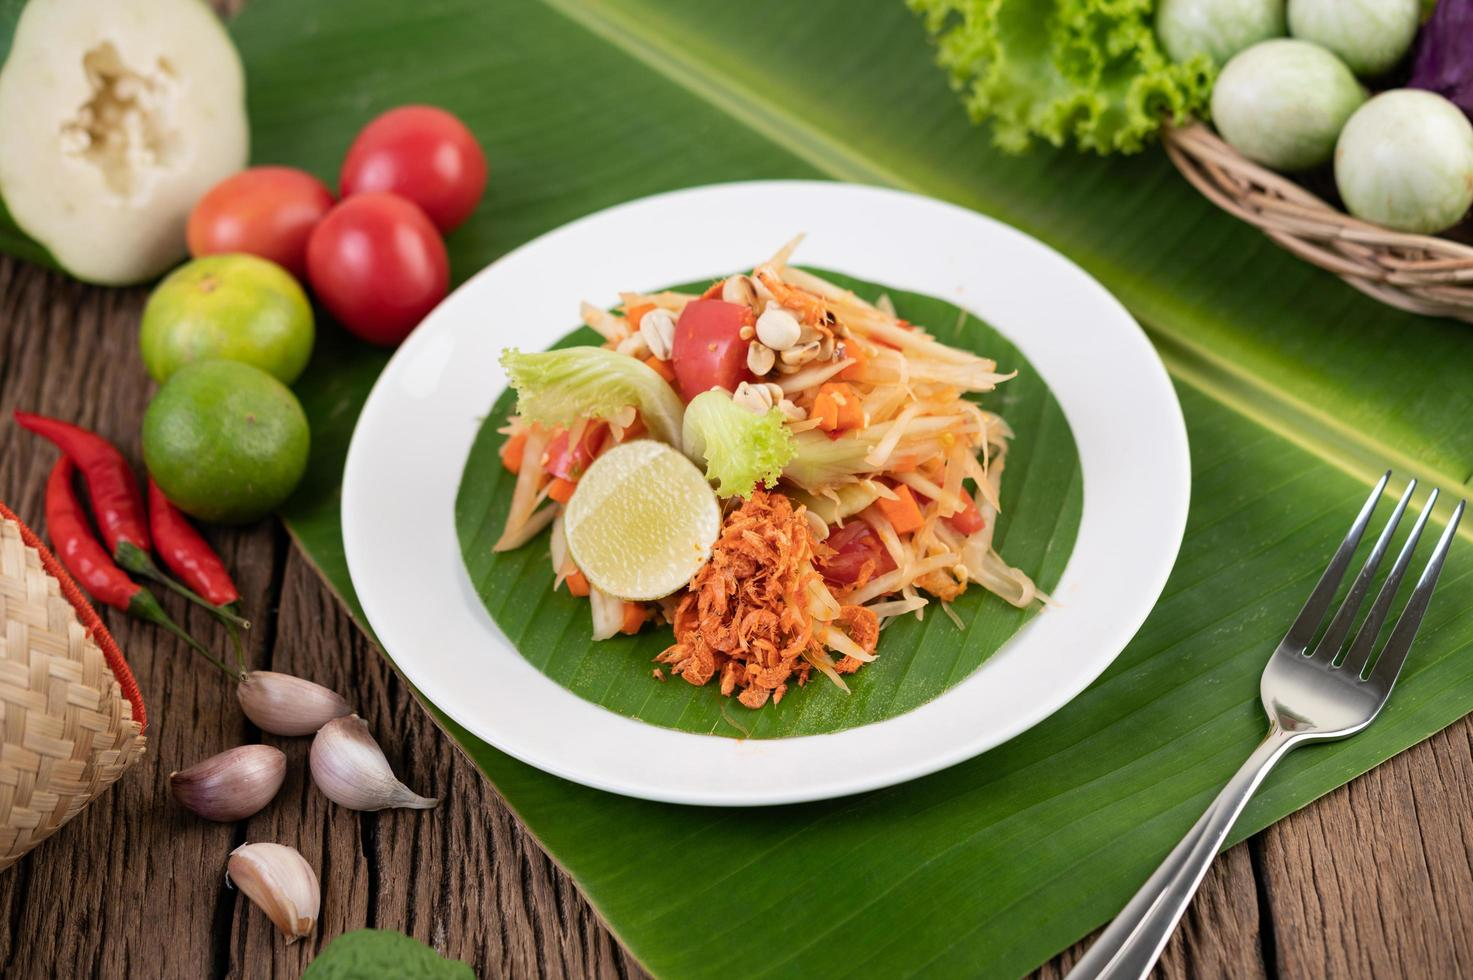 Thai papaya salad with banana leaves and fresh ingredients photo